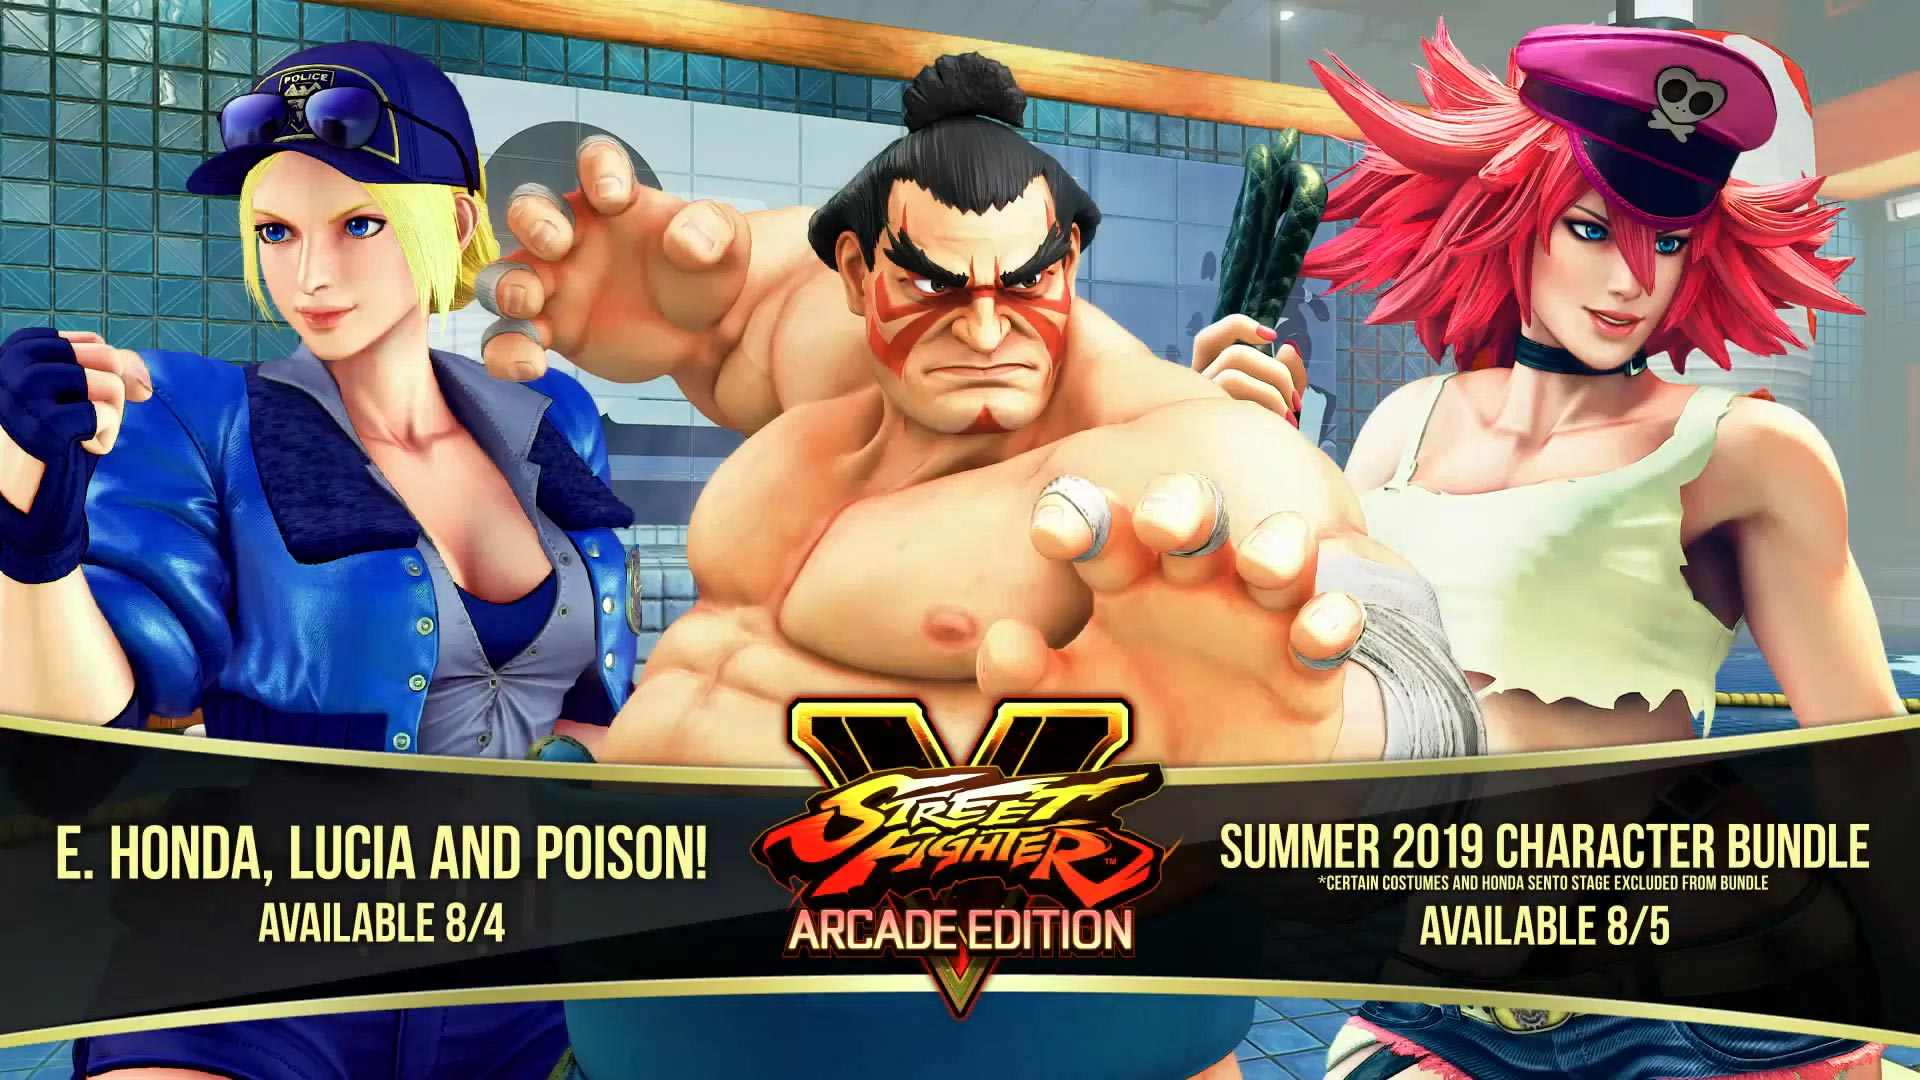 Street Fighter 5 leaked gallery of E. Honda, Lucia and Poison 1 out of 35 image gallery